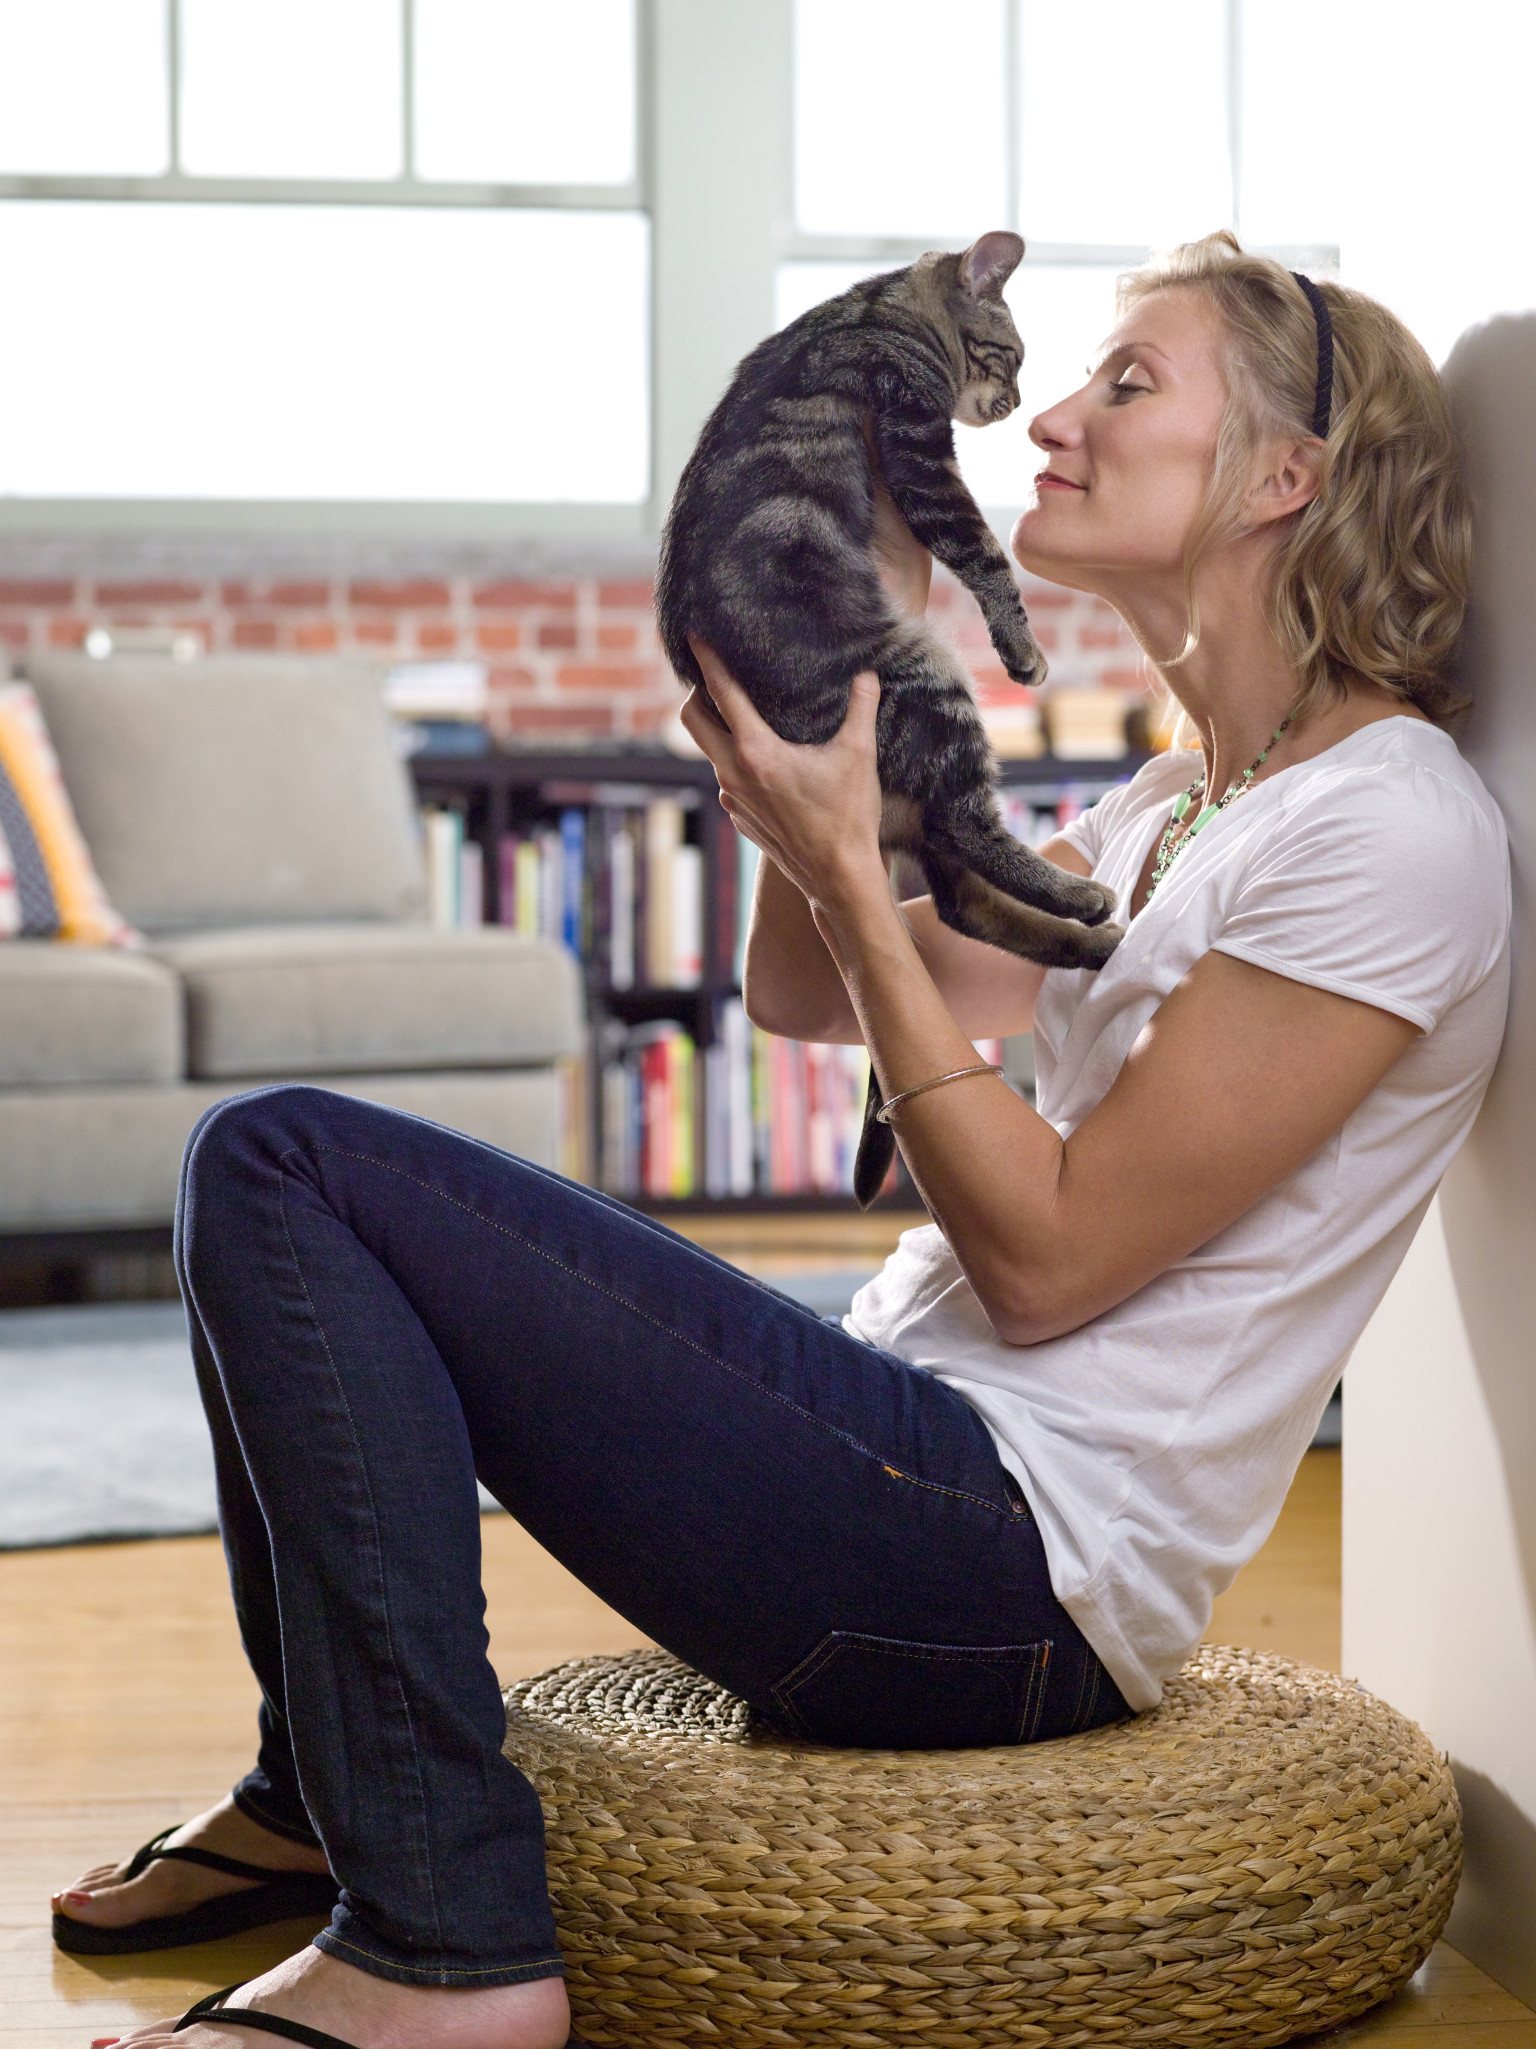 Psychotherapy and cat